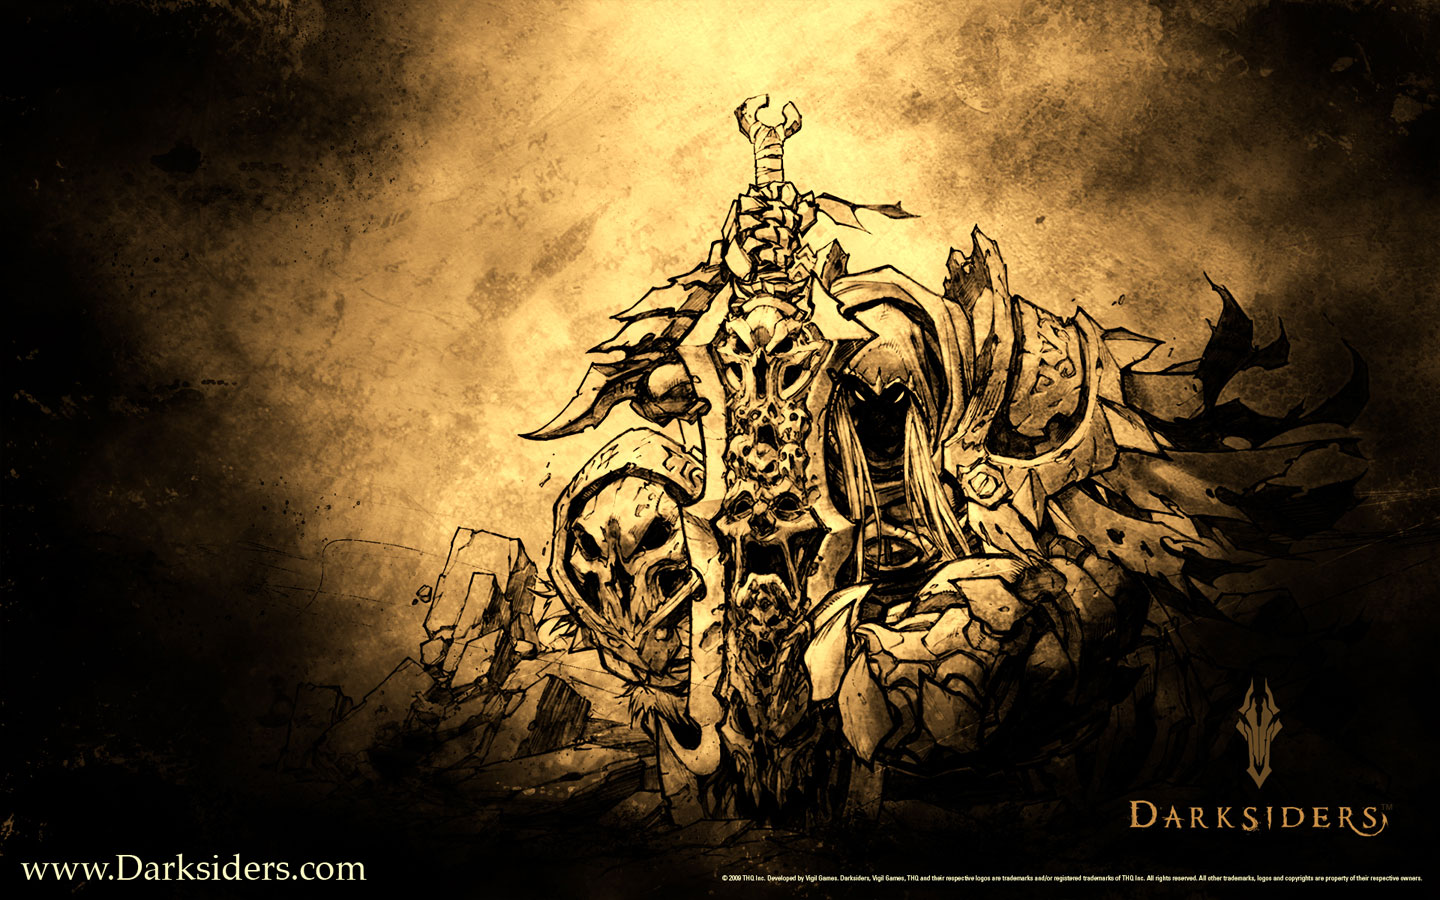 Horsemen Of The Apocalypse Darksiders Four horsemen the 1440x900